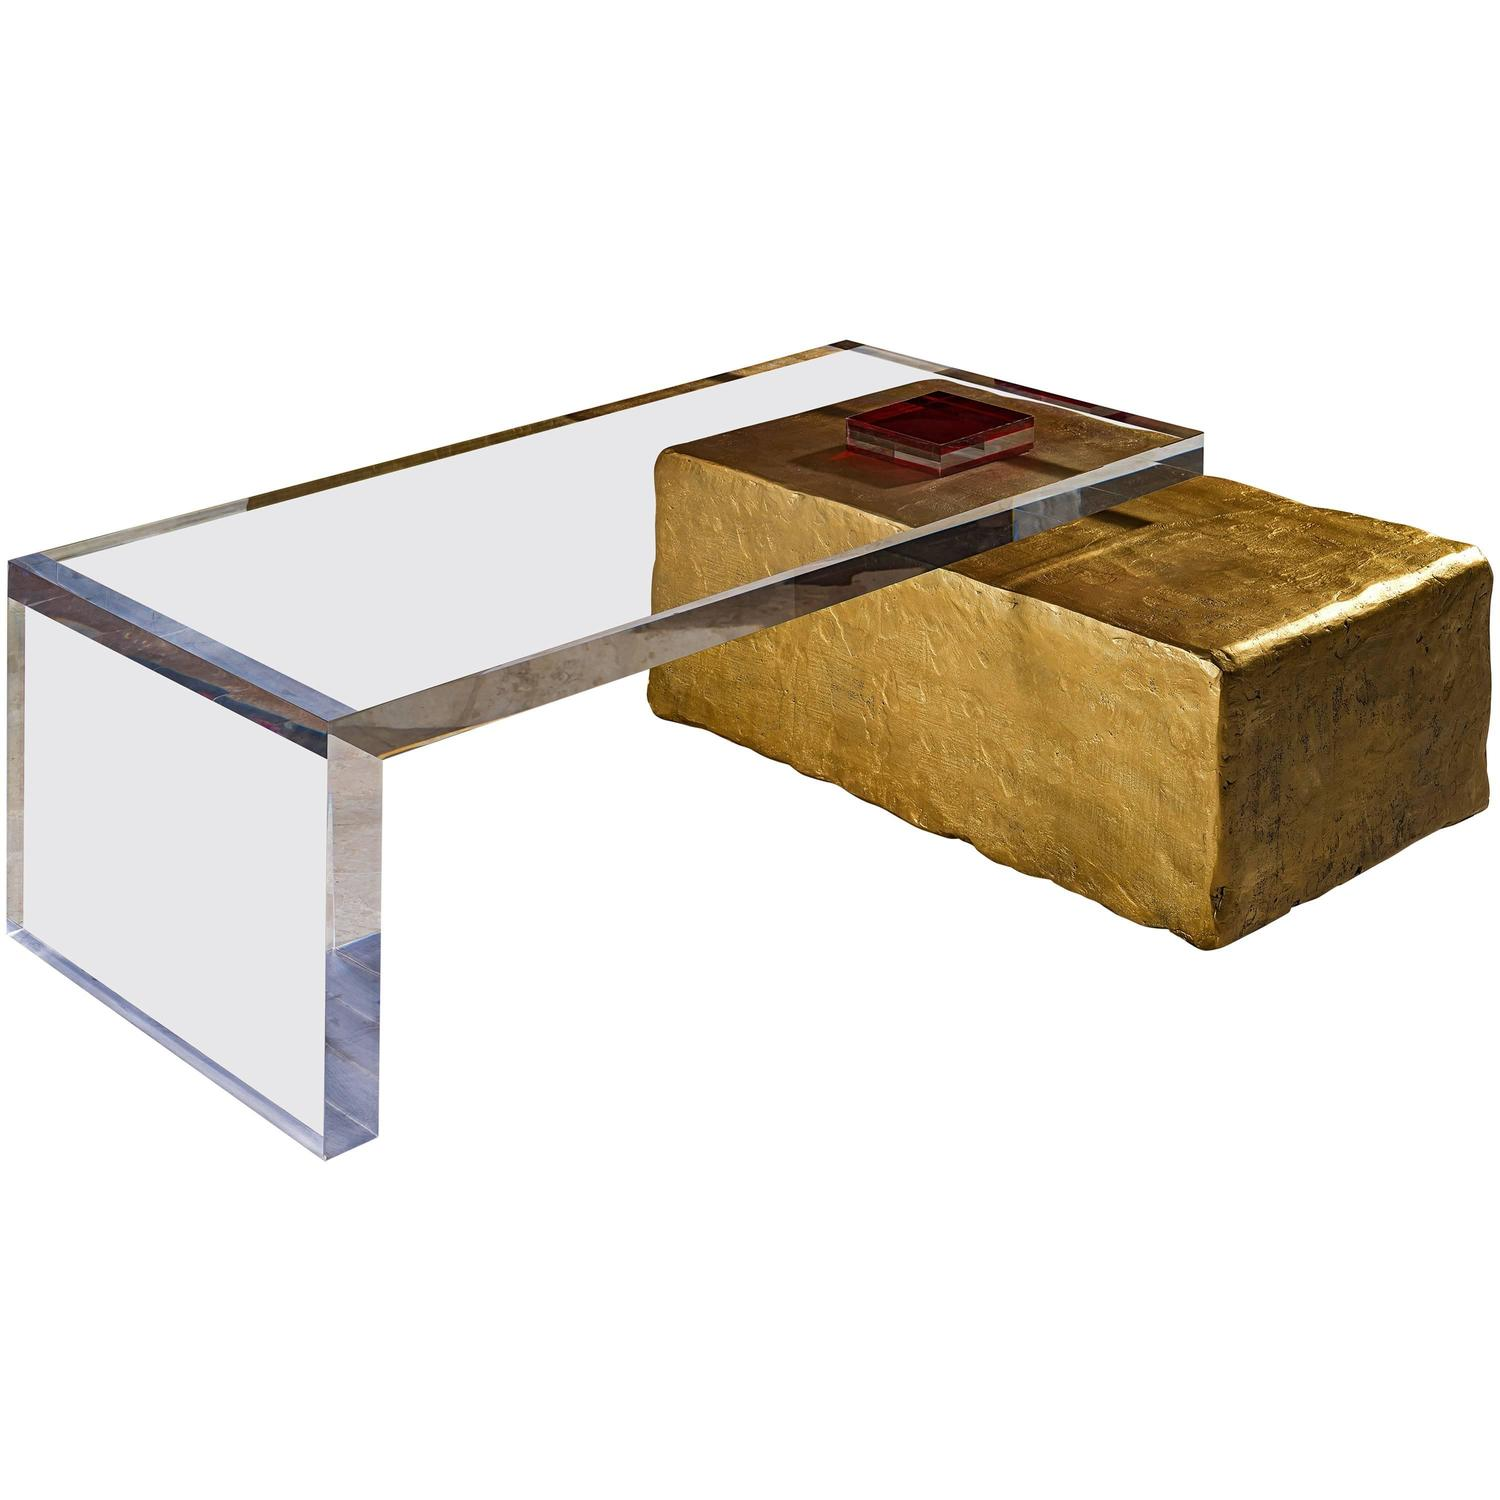 Charly bounan 39 s unique coffee table for sale at 1stdibs for Cool coffee tables for sale